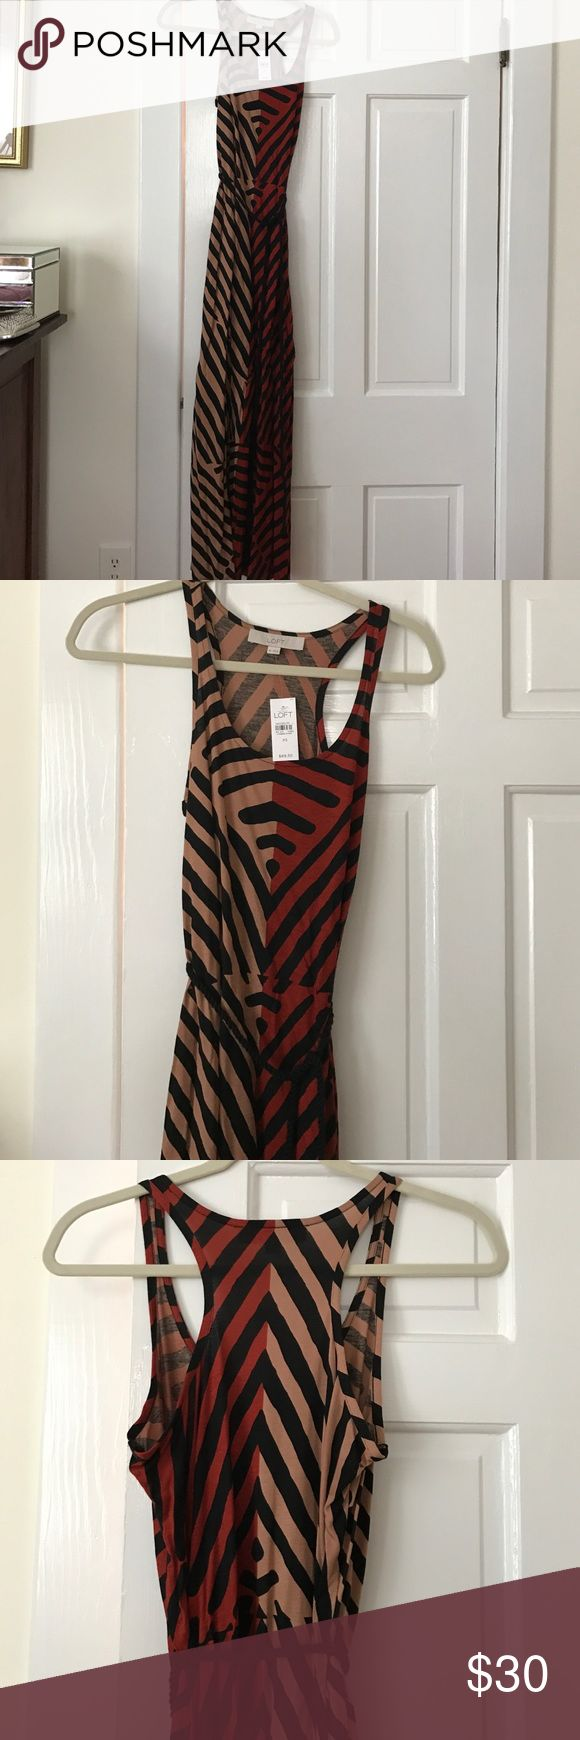 Maxi patterned brown and tan striped dress Maxi brown and tan striped dress with black rope belt attached. Anne Taylor Loft, size XS, new with tags LOFT Dresses Maxi